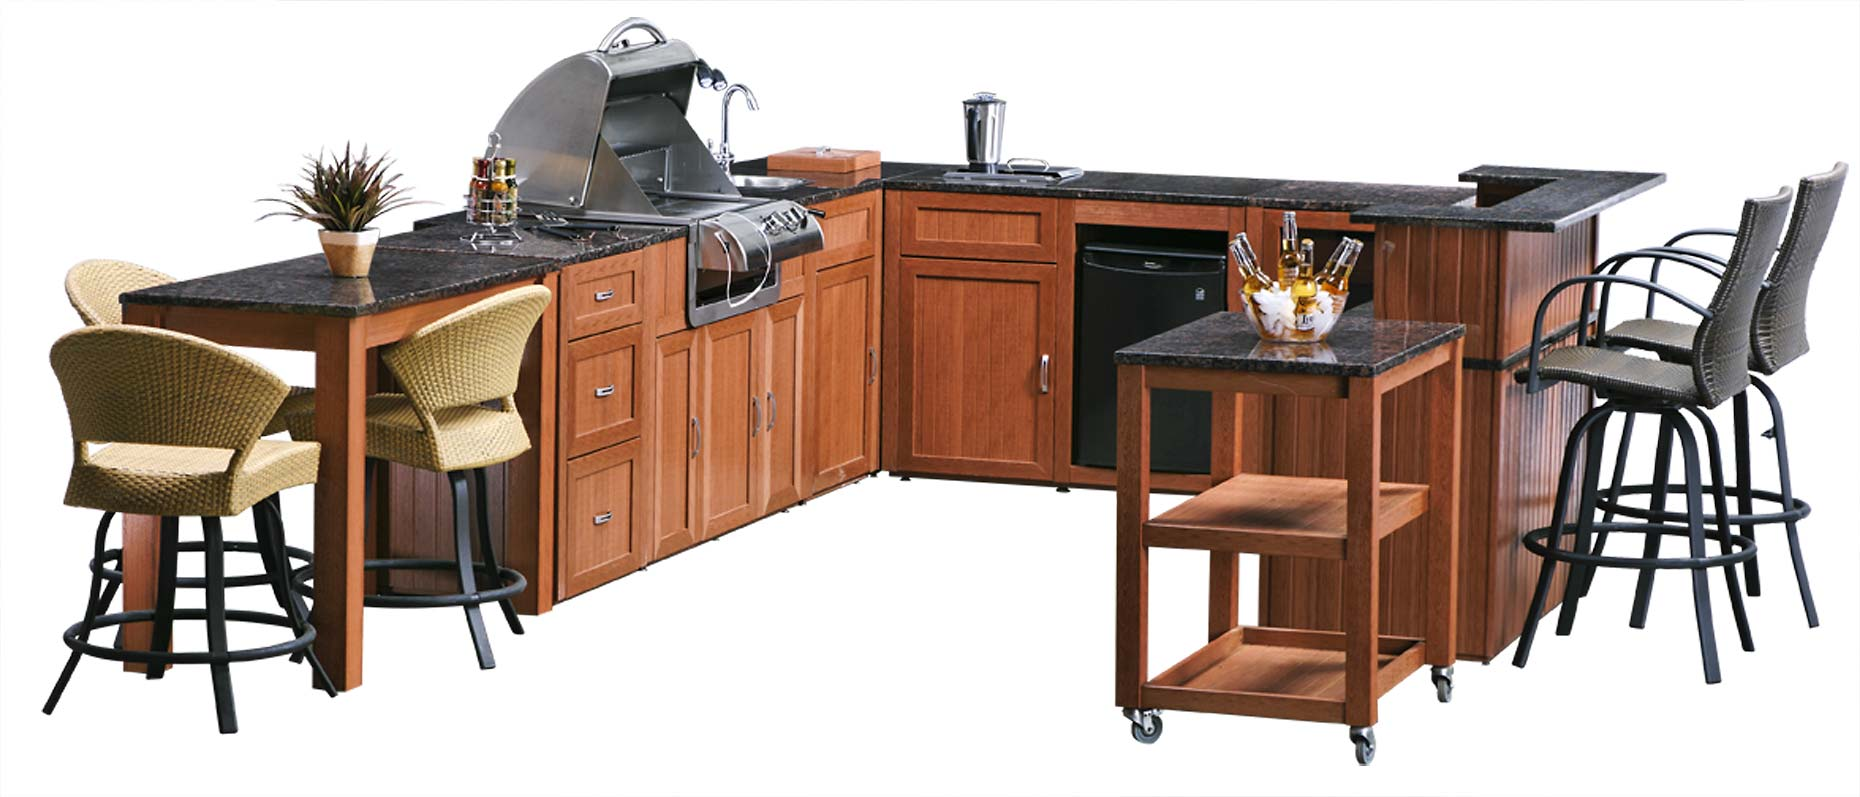 A & B Accessories Outdoor Kitchen